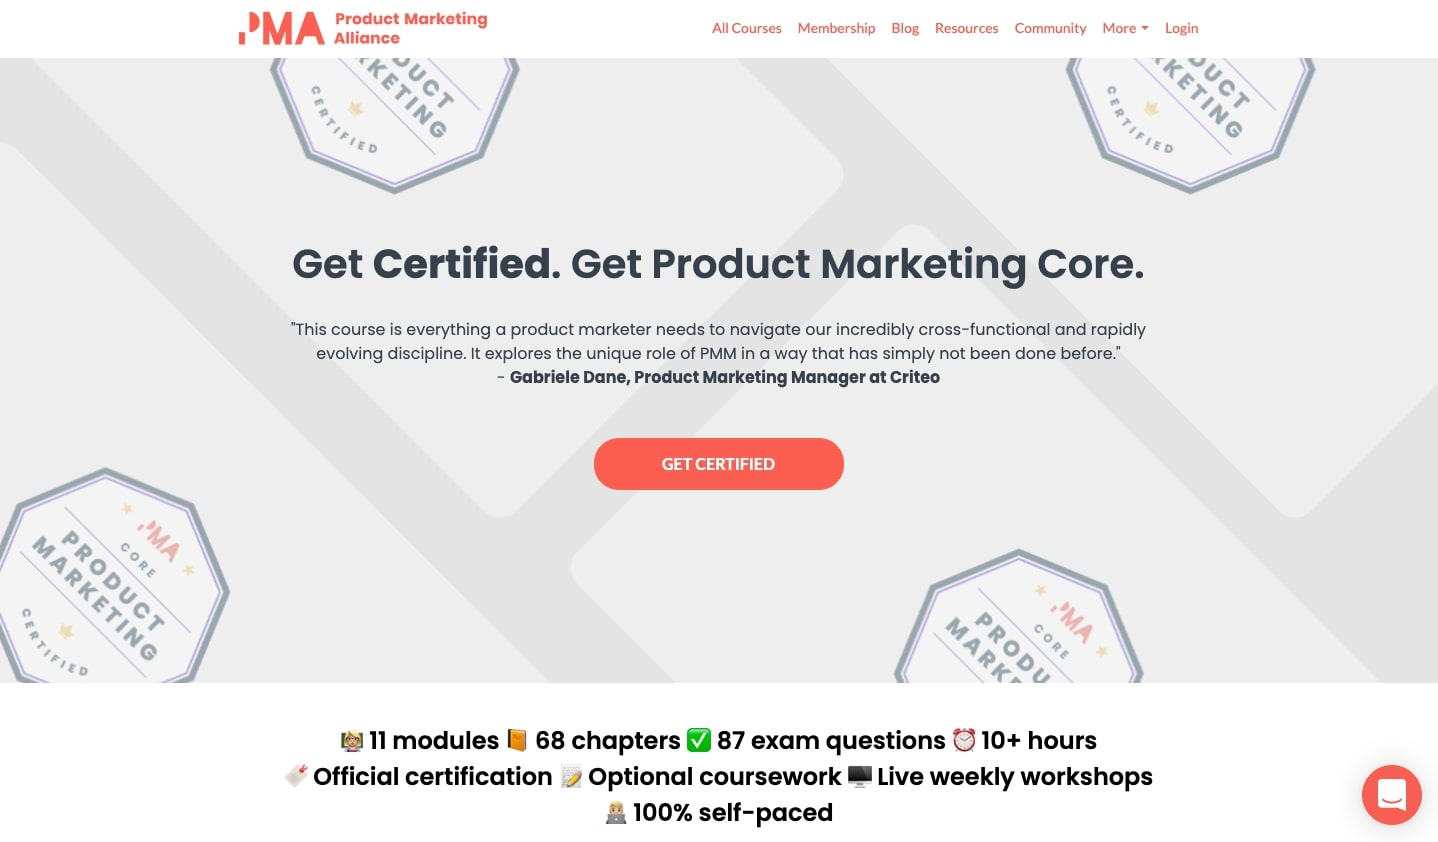 Product Marketing Alliance's Product Marketing Core course